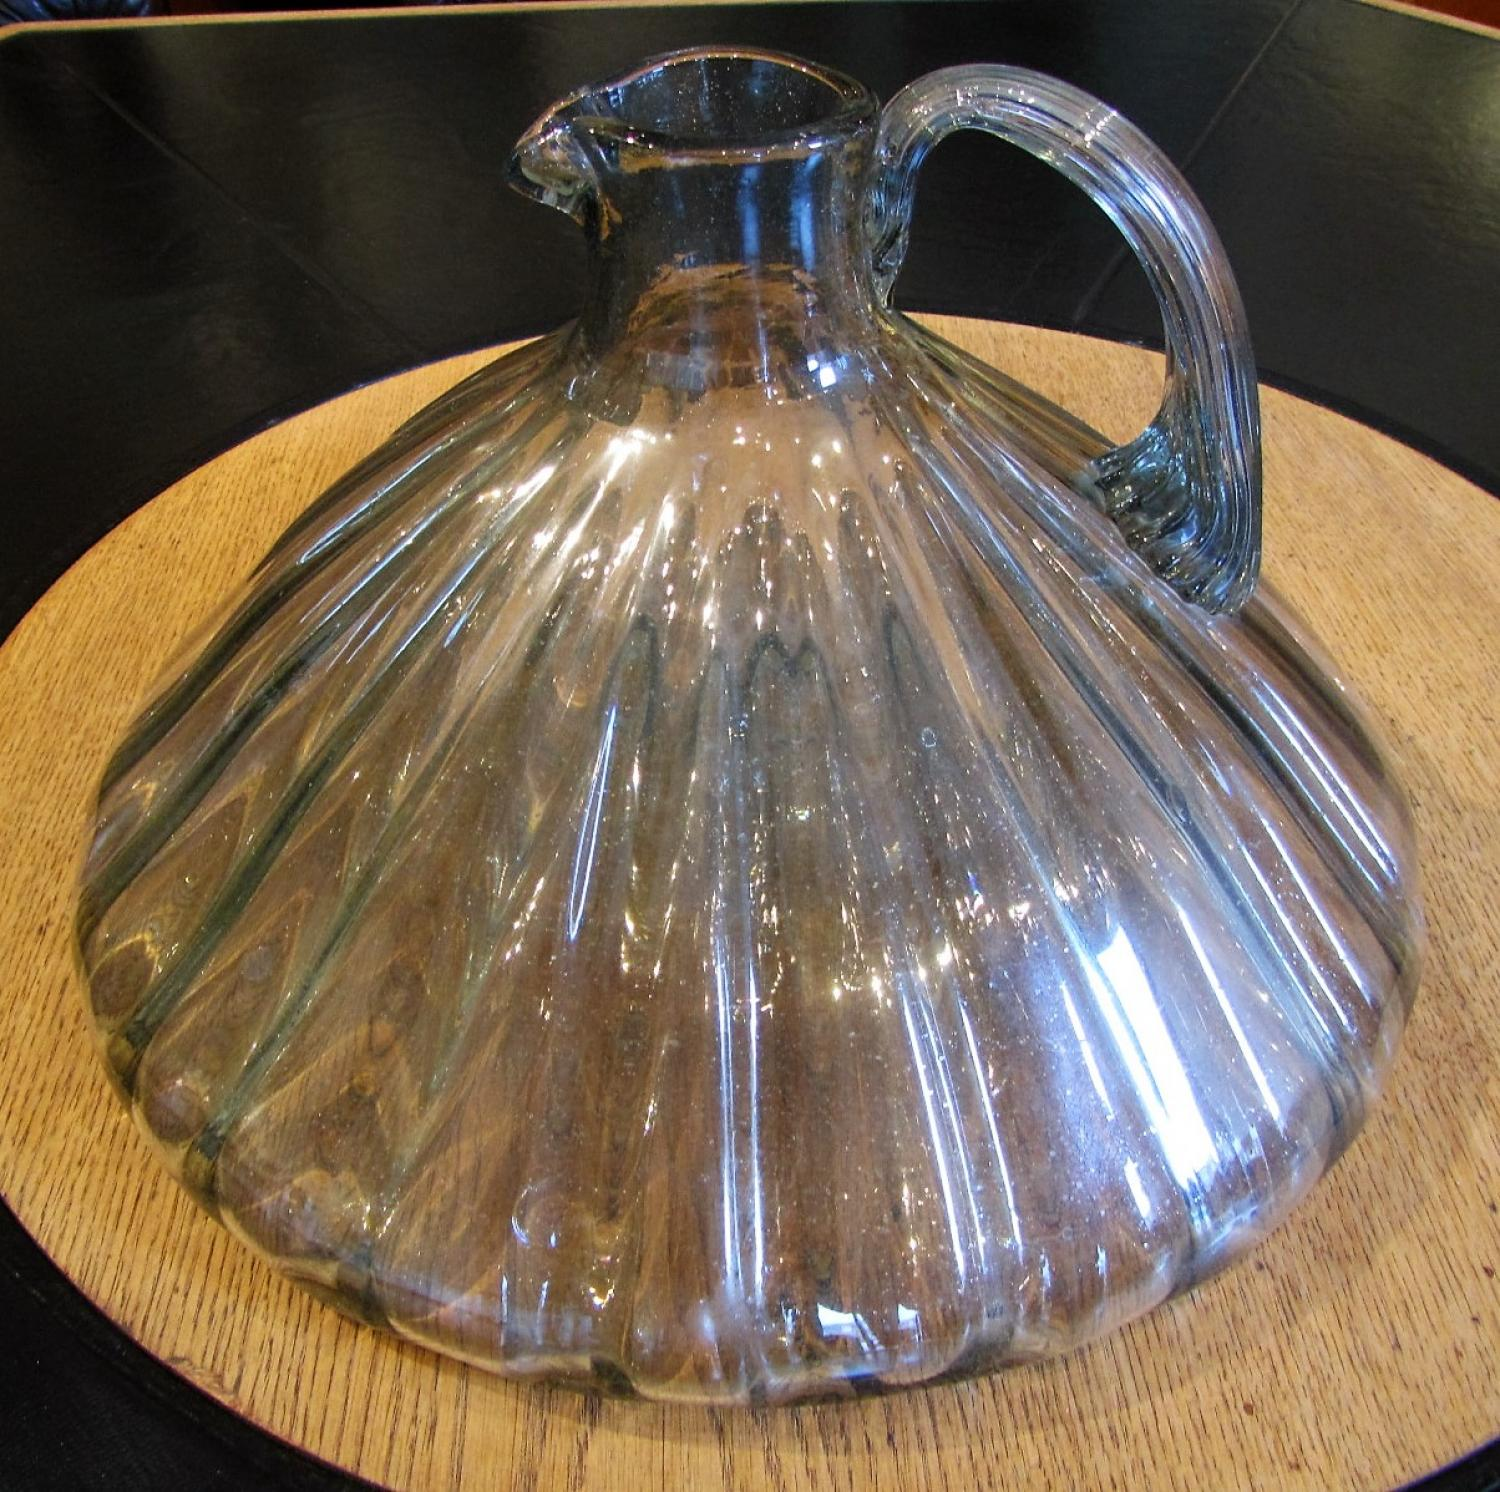 Murano glass ships decanter jug